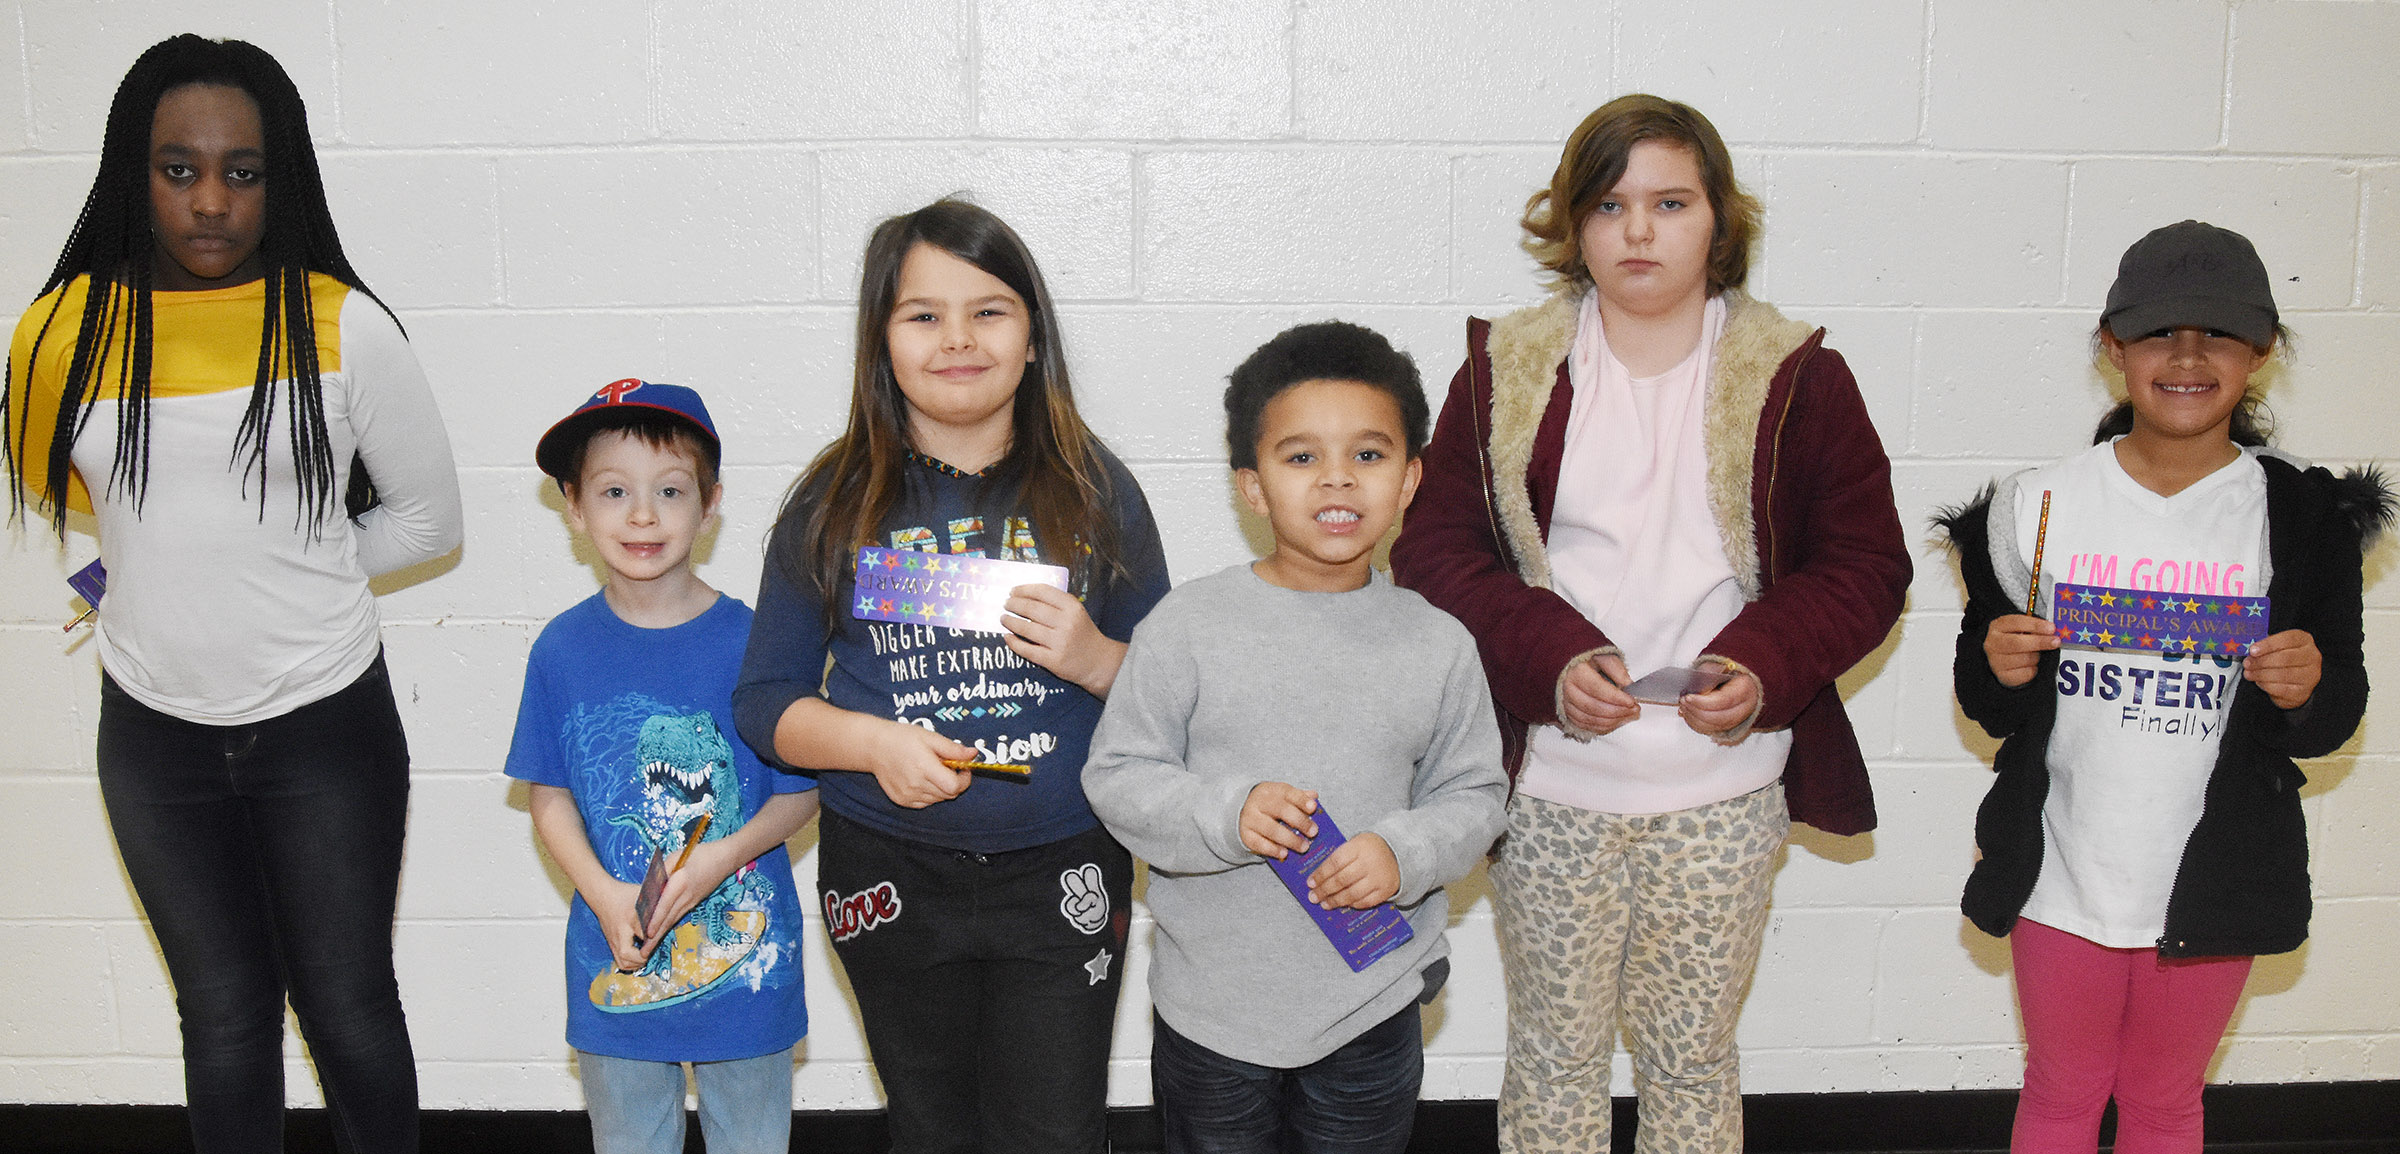 From left are fifth-grader Jazzmin Coulter, first-grader Carson Montes, third-grader Dorothy Shively, kindergartener Tyrek Moore, fourth-grader Mary James and second-grader Amani Bridgewater.